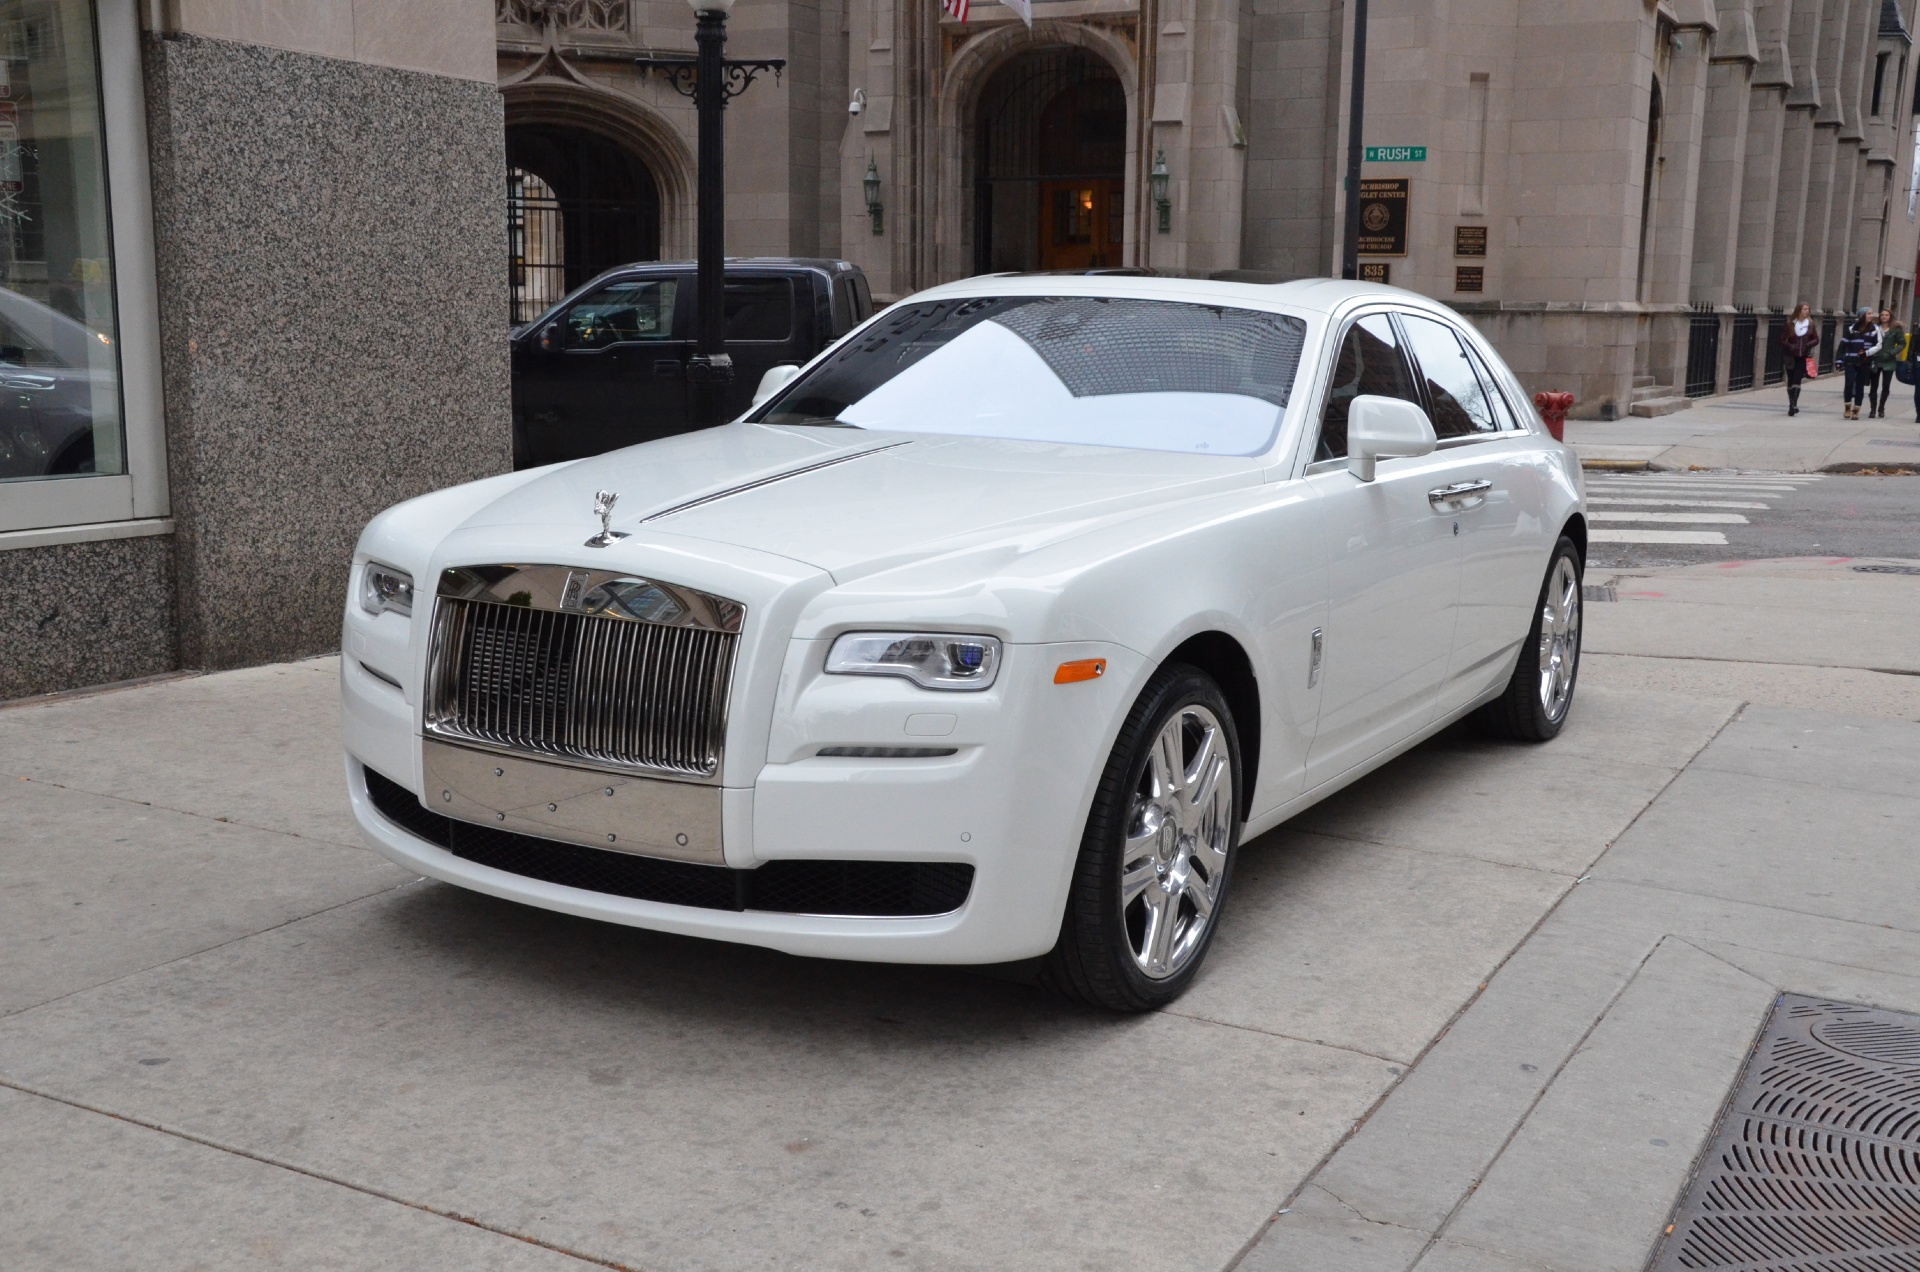 Buying a plane or seeing the Titanic is possible with your Rolls Royce money.